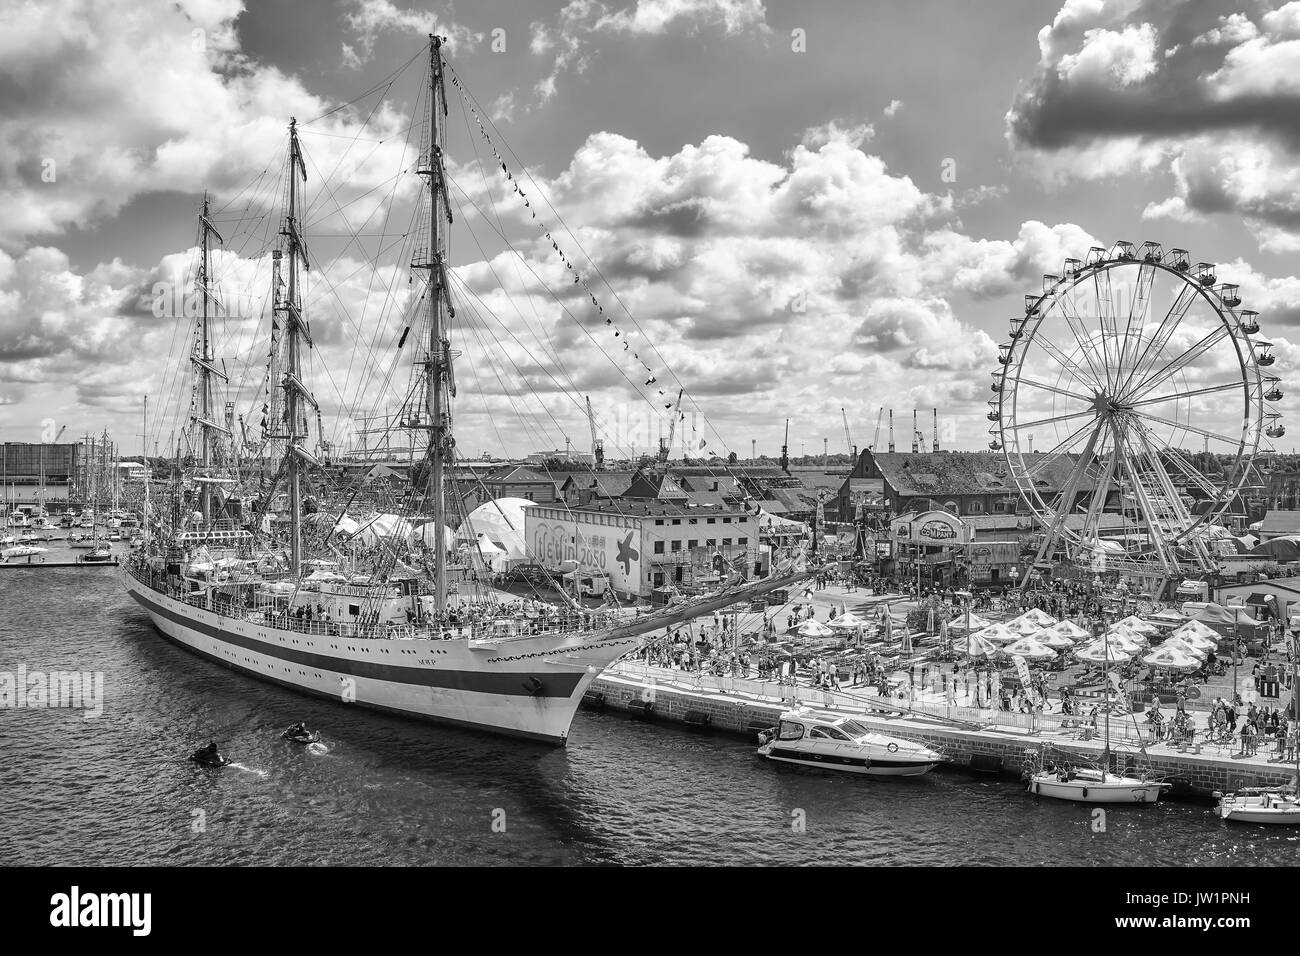 Szczecin, Poland - August 06, 2017: Sailing vessels and an amusement park on Lasztownia island at the Final of The Tall Ships Races 2017 in Szczecin. - Stock Image